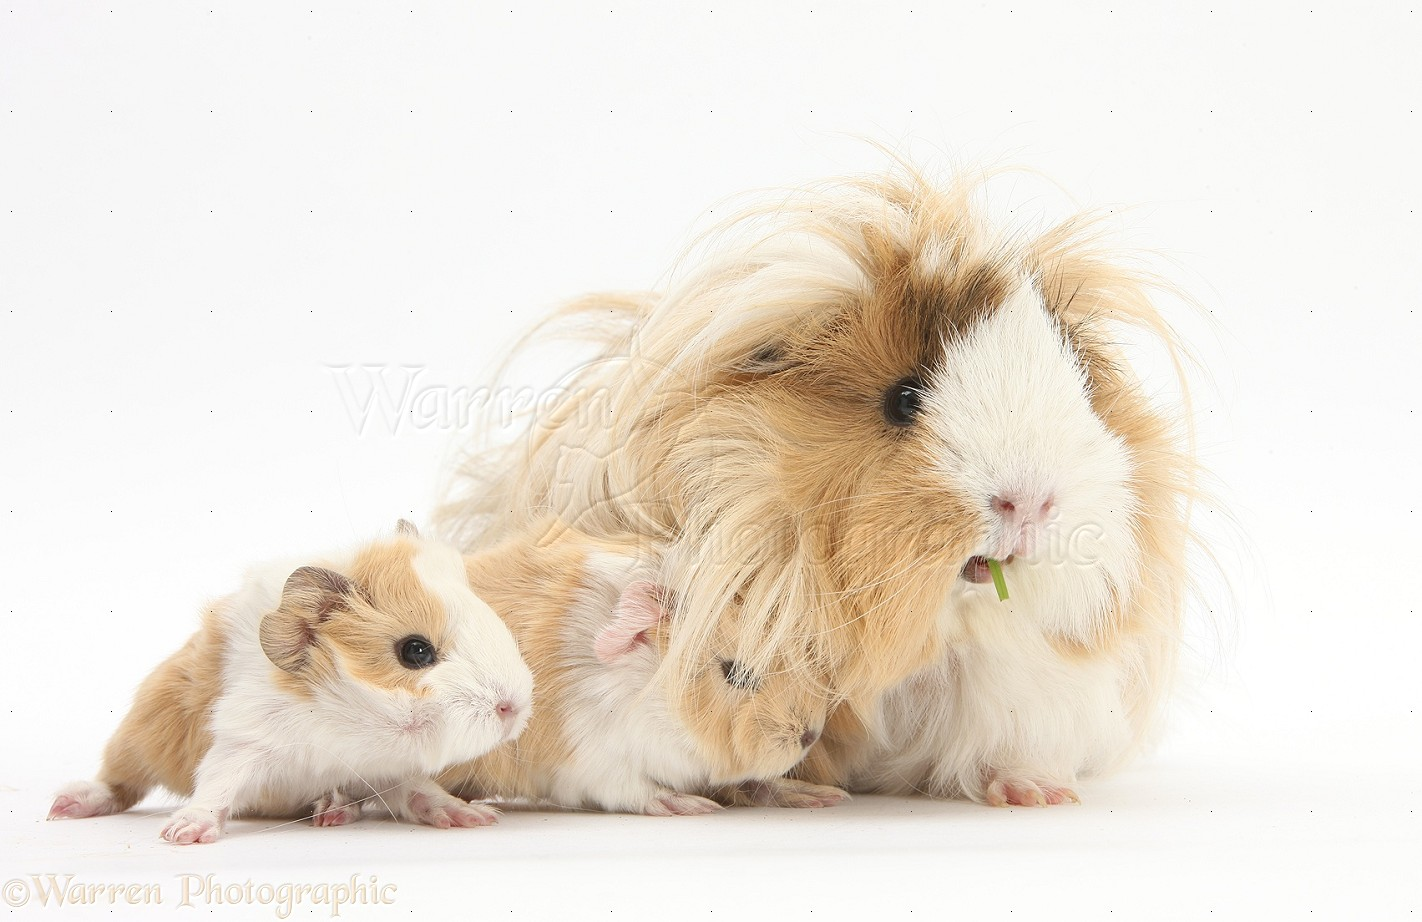 Cute Baby Pig Wallpaper Mother Guinea Pig And Baby Guinea Piglets 1 Day Old Photo